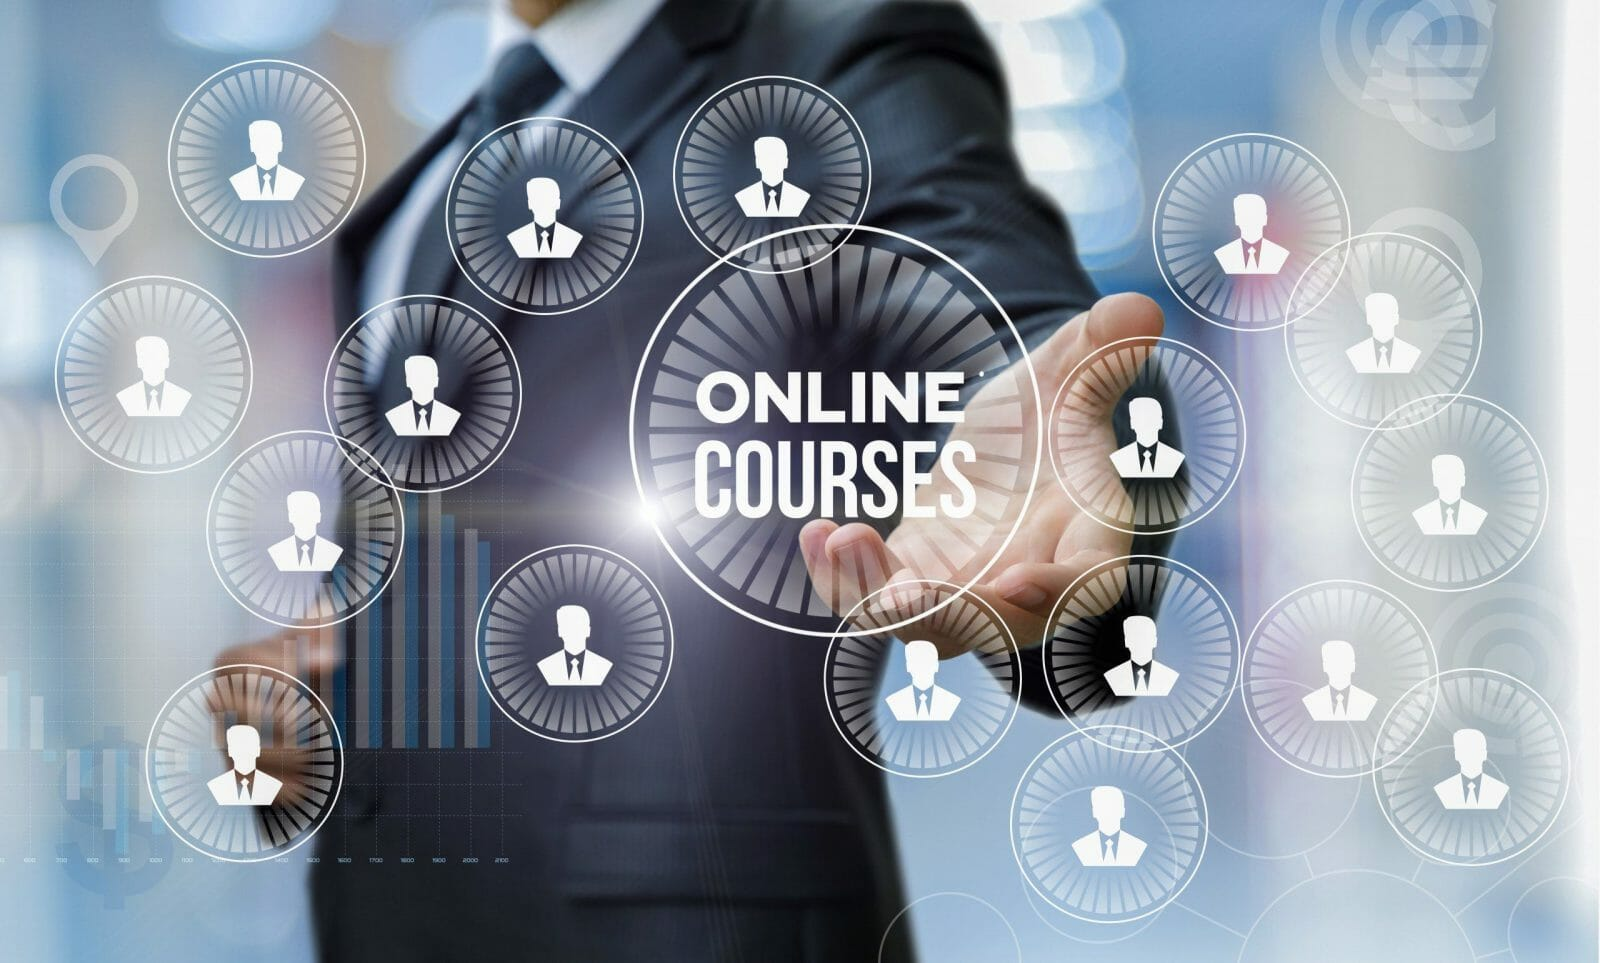 Man shows online courses on blurred background.